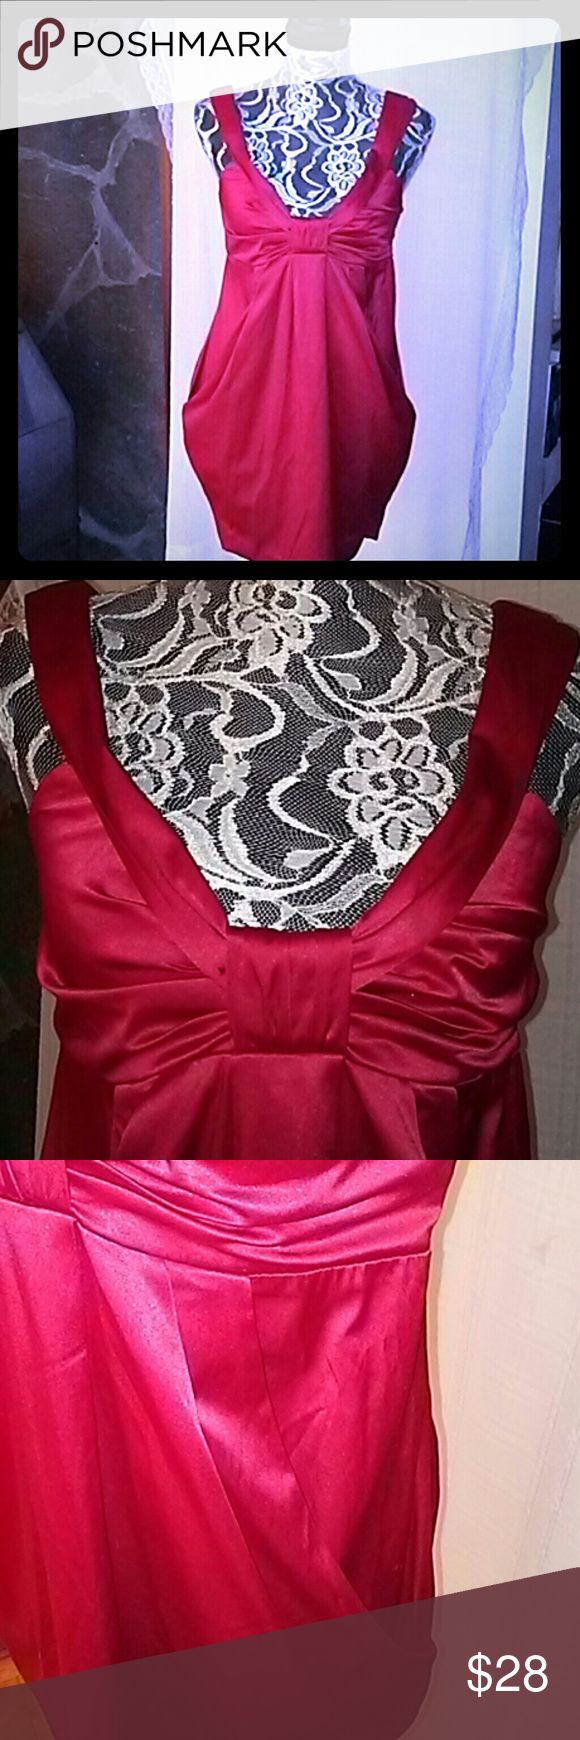 "MIDI DRESS Lustrous red satin in midweight cotton/polyester/spandex fashions a fun sleeveless dress. Features include: holdover ""V"" neckline from front and over shoulder to center back; spaghetti straps and bra strap threaders under shoulder portion of collar; gathered center bust;  pleated skirt front and back; draped front pocket effect panel on skirt; pegged hem; center back zipper closure. Measures: 30"" underbust; 32"" long from high shoulder to hem. Flattering easy fit; sassy yet classy…"